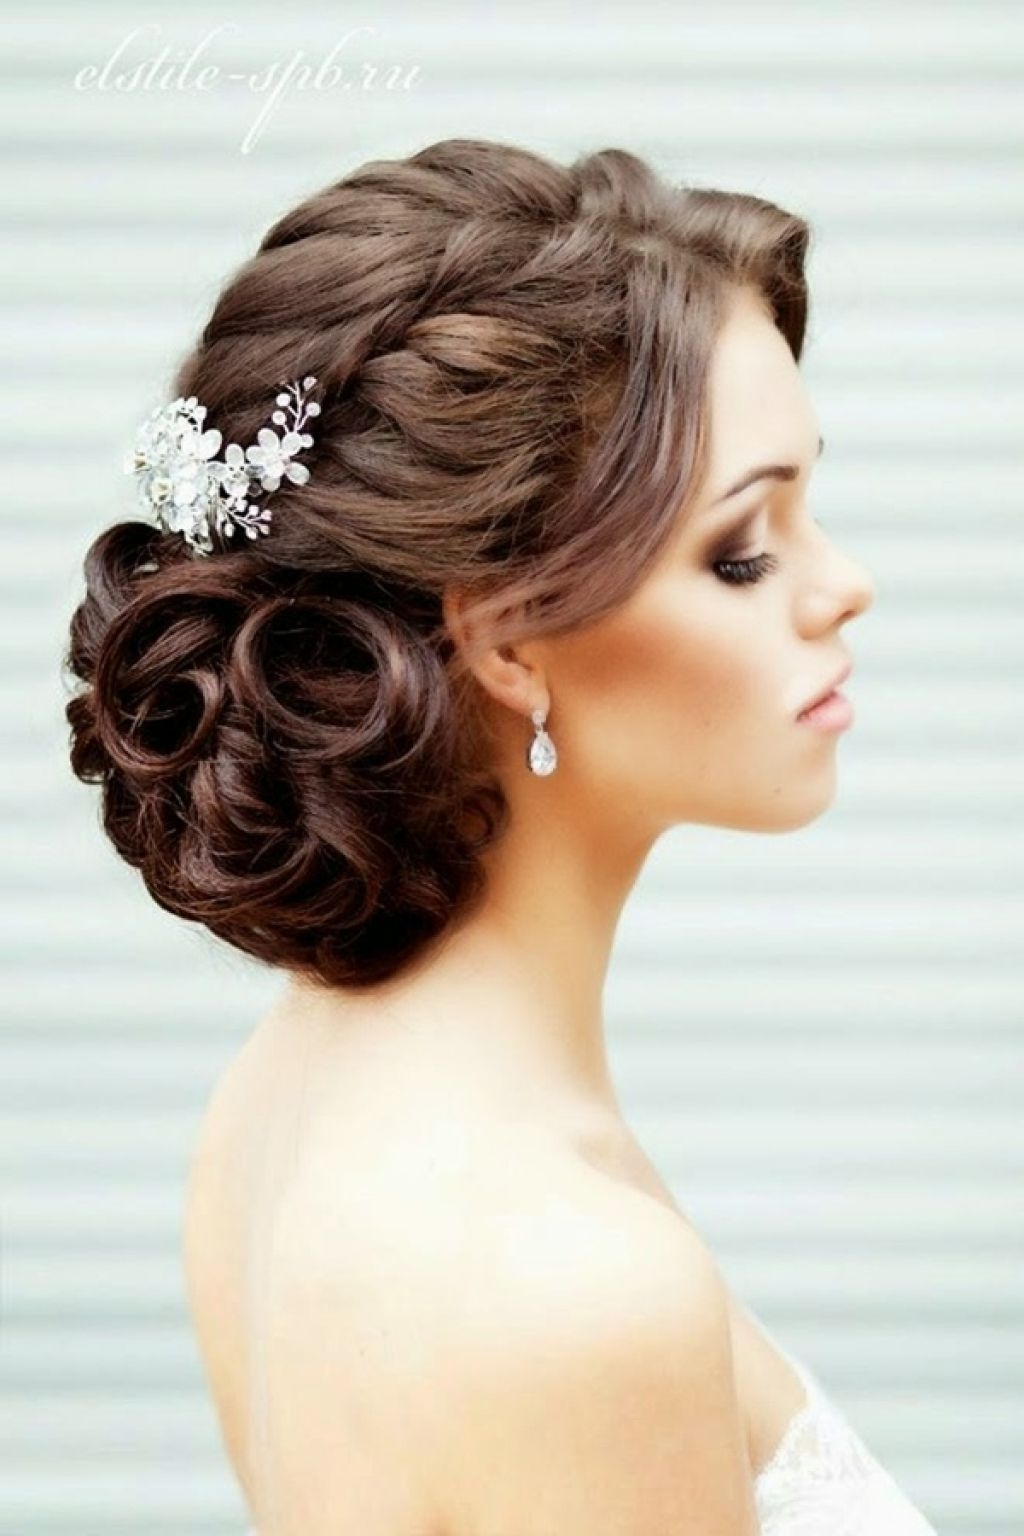 3 Easy Updo Hairstyles For Long Hair Hairstyle Tips Bridesmaid With Regard To Popular Wedding Hairstyles For Long Hair Bridesmaid (View 6 of 15)